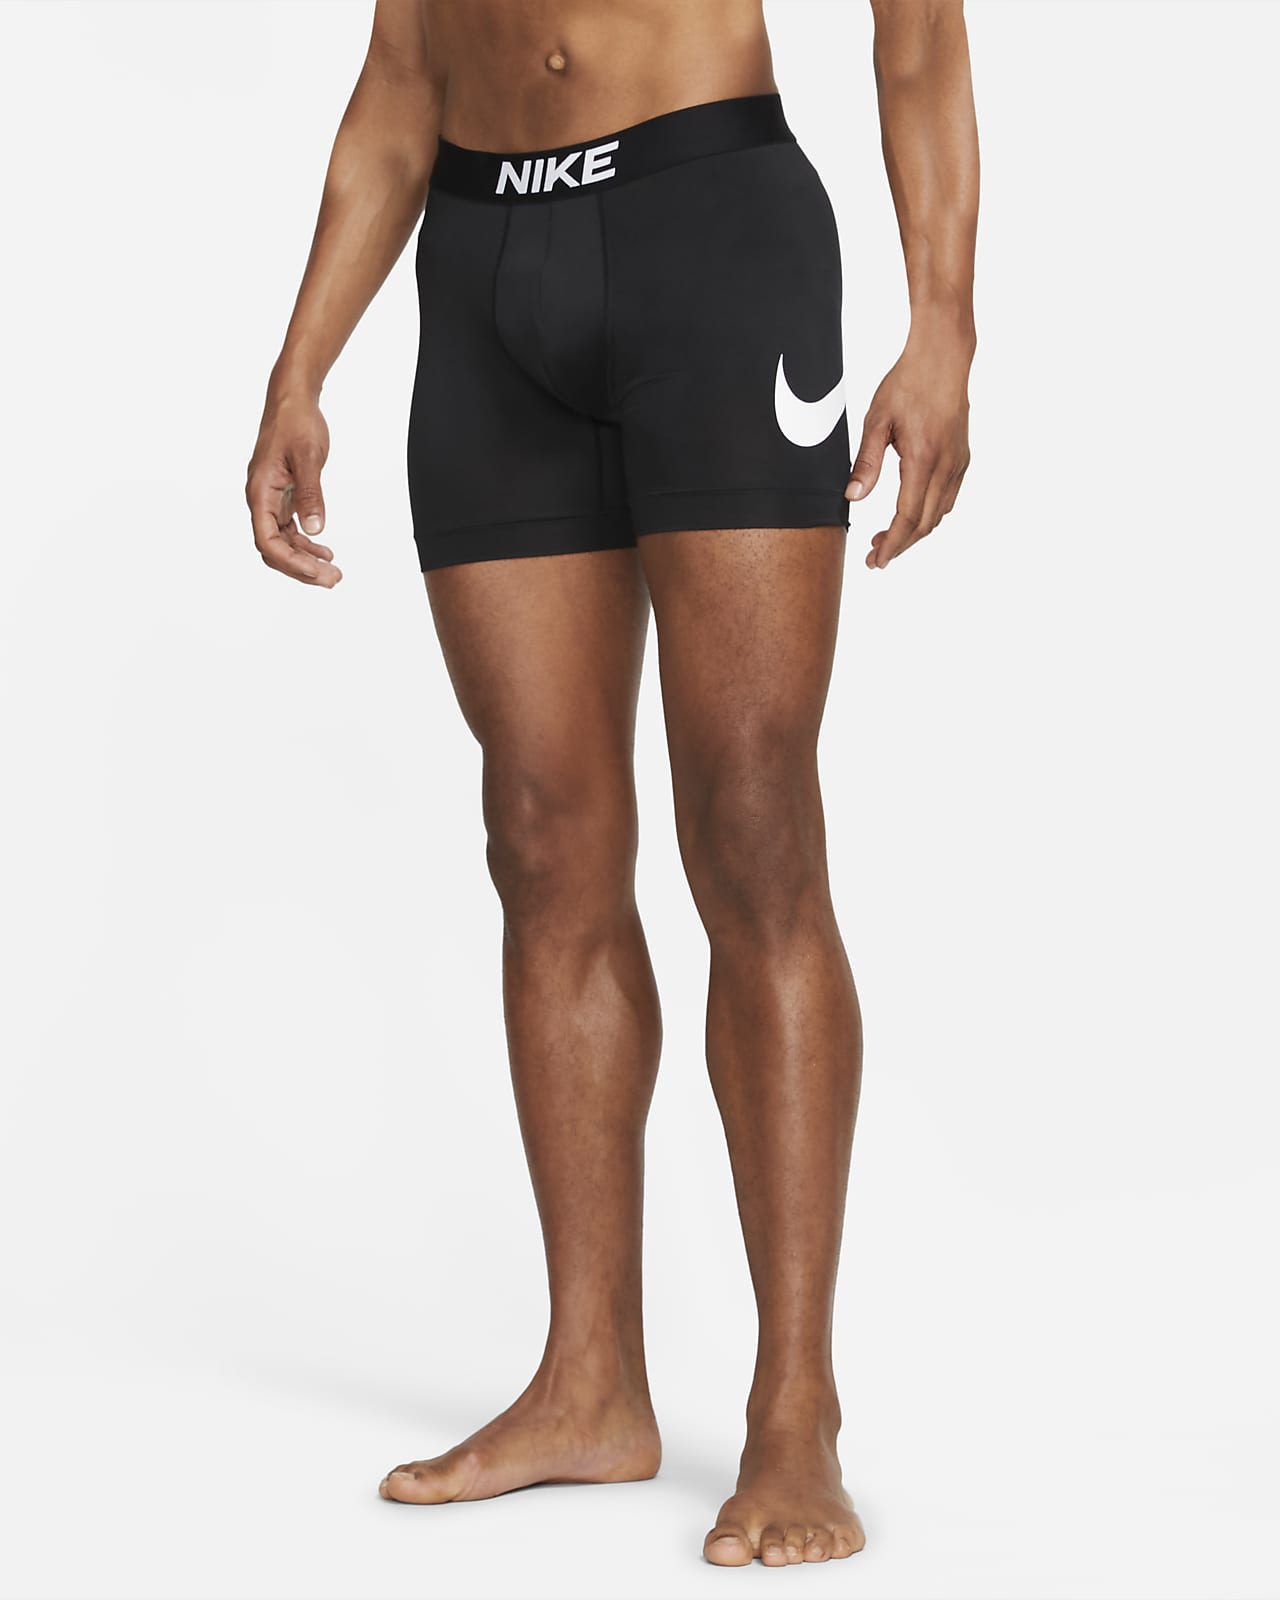 Nike Essential Micro Men's Boxer Briefs